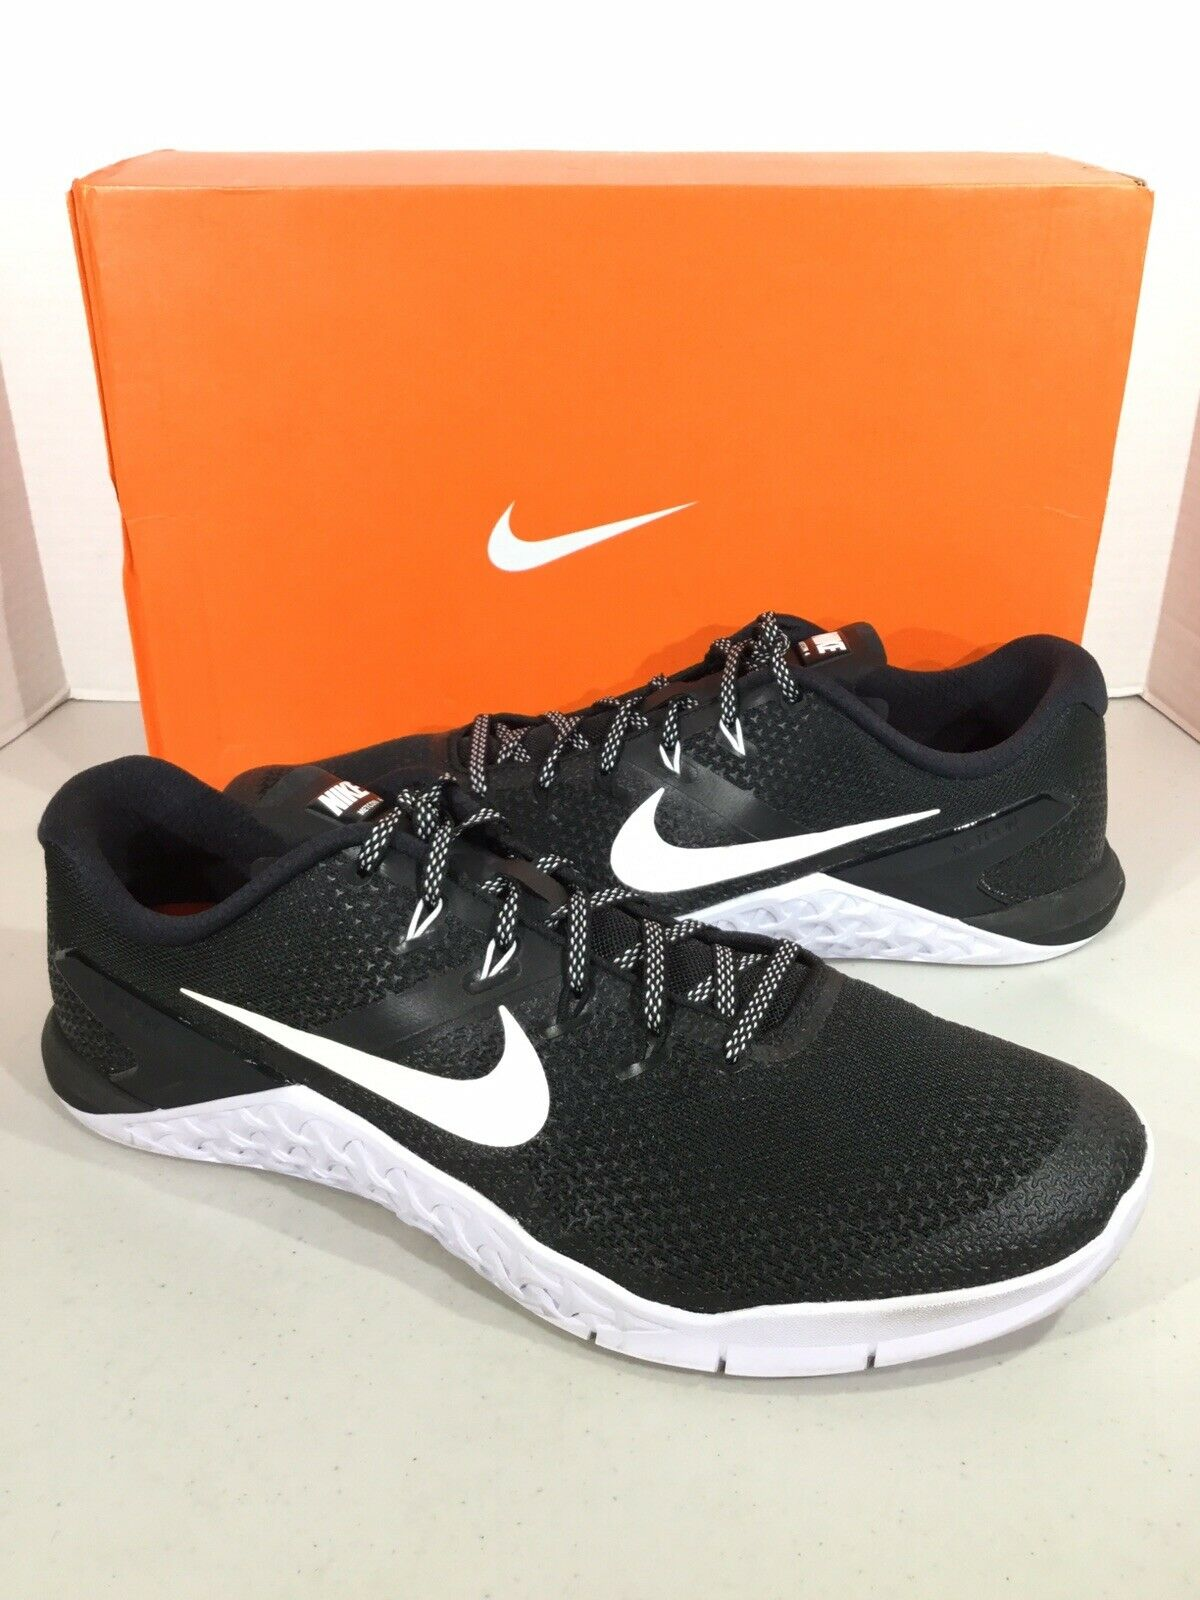 769aa2f6b7960 Nike Metcon Metcon Metcon 4 Men s Size 13 Black White Athletic  Weightlifting shoes X19-862